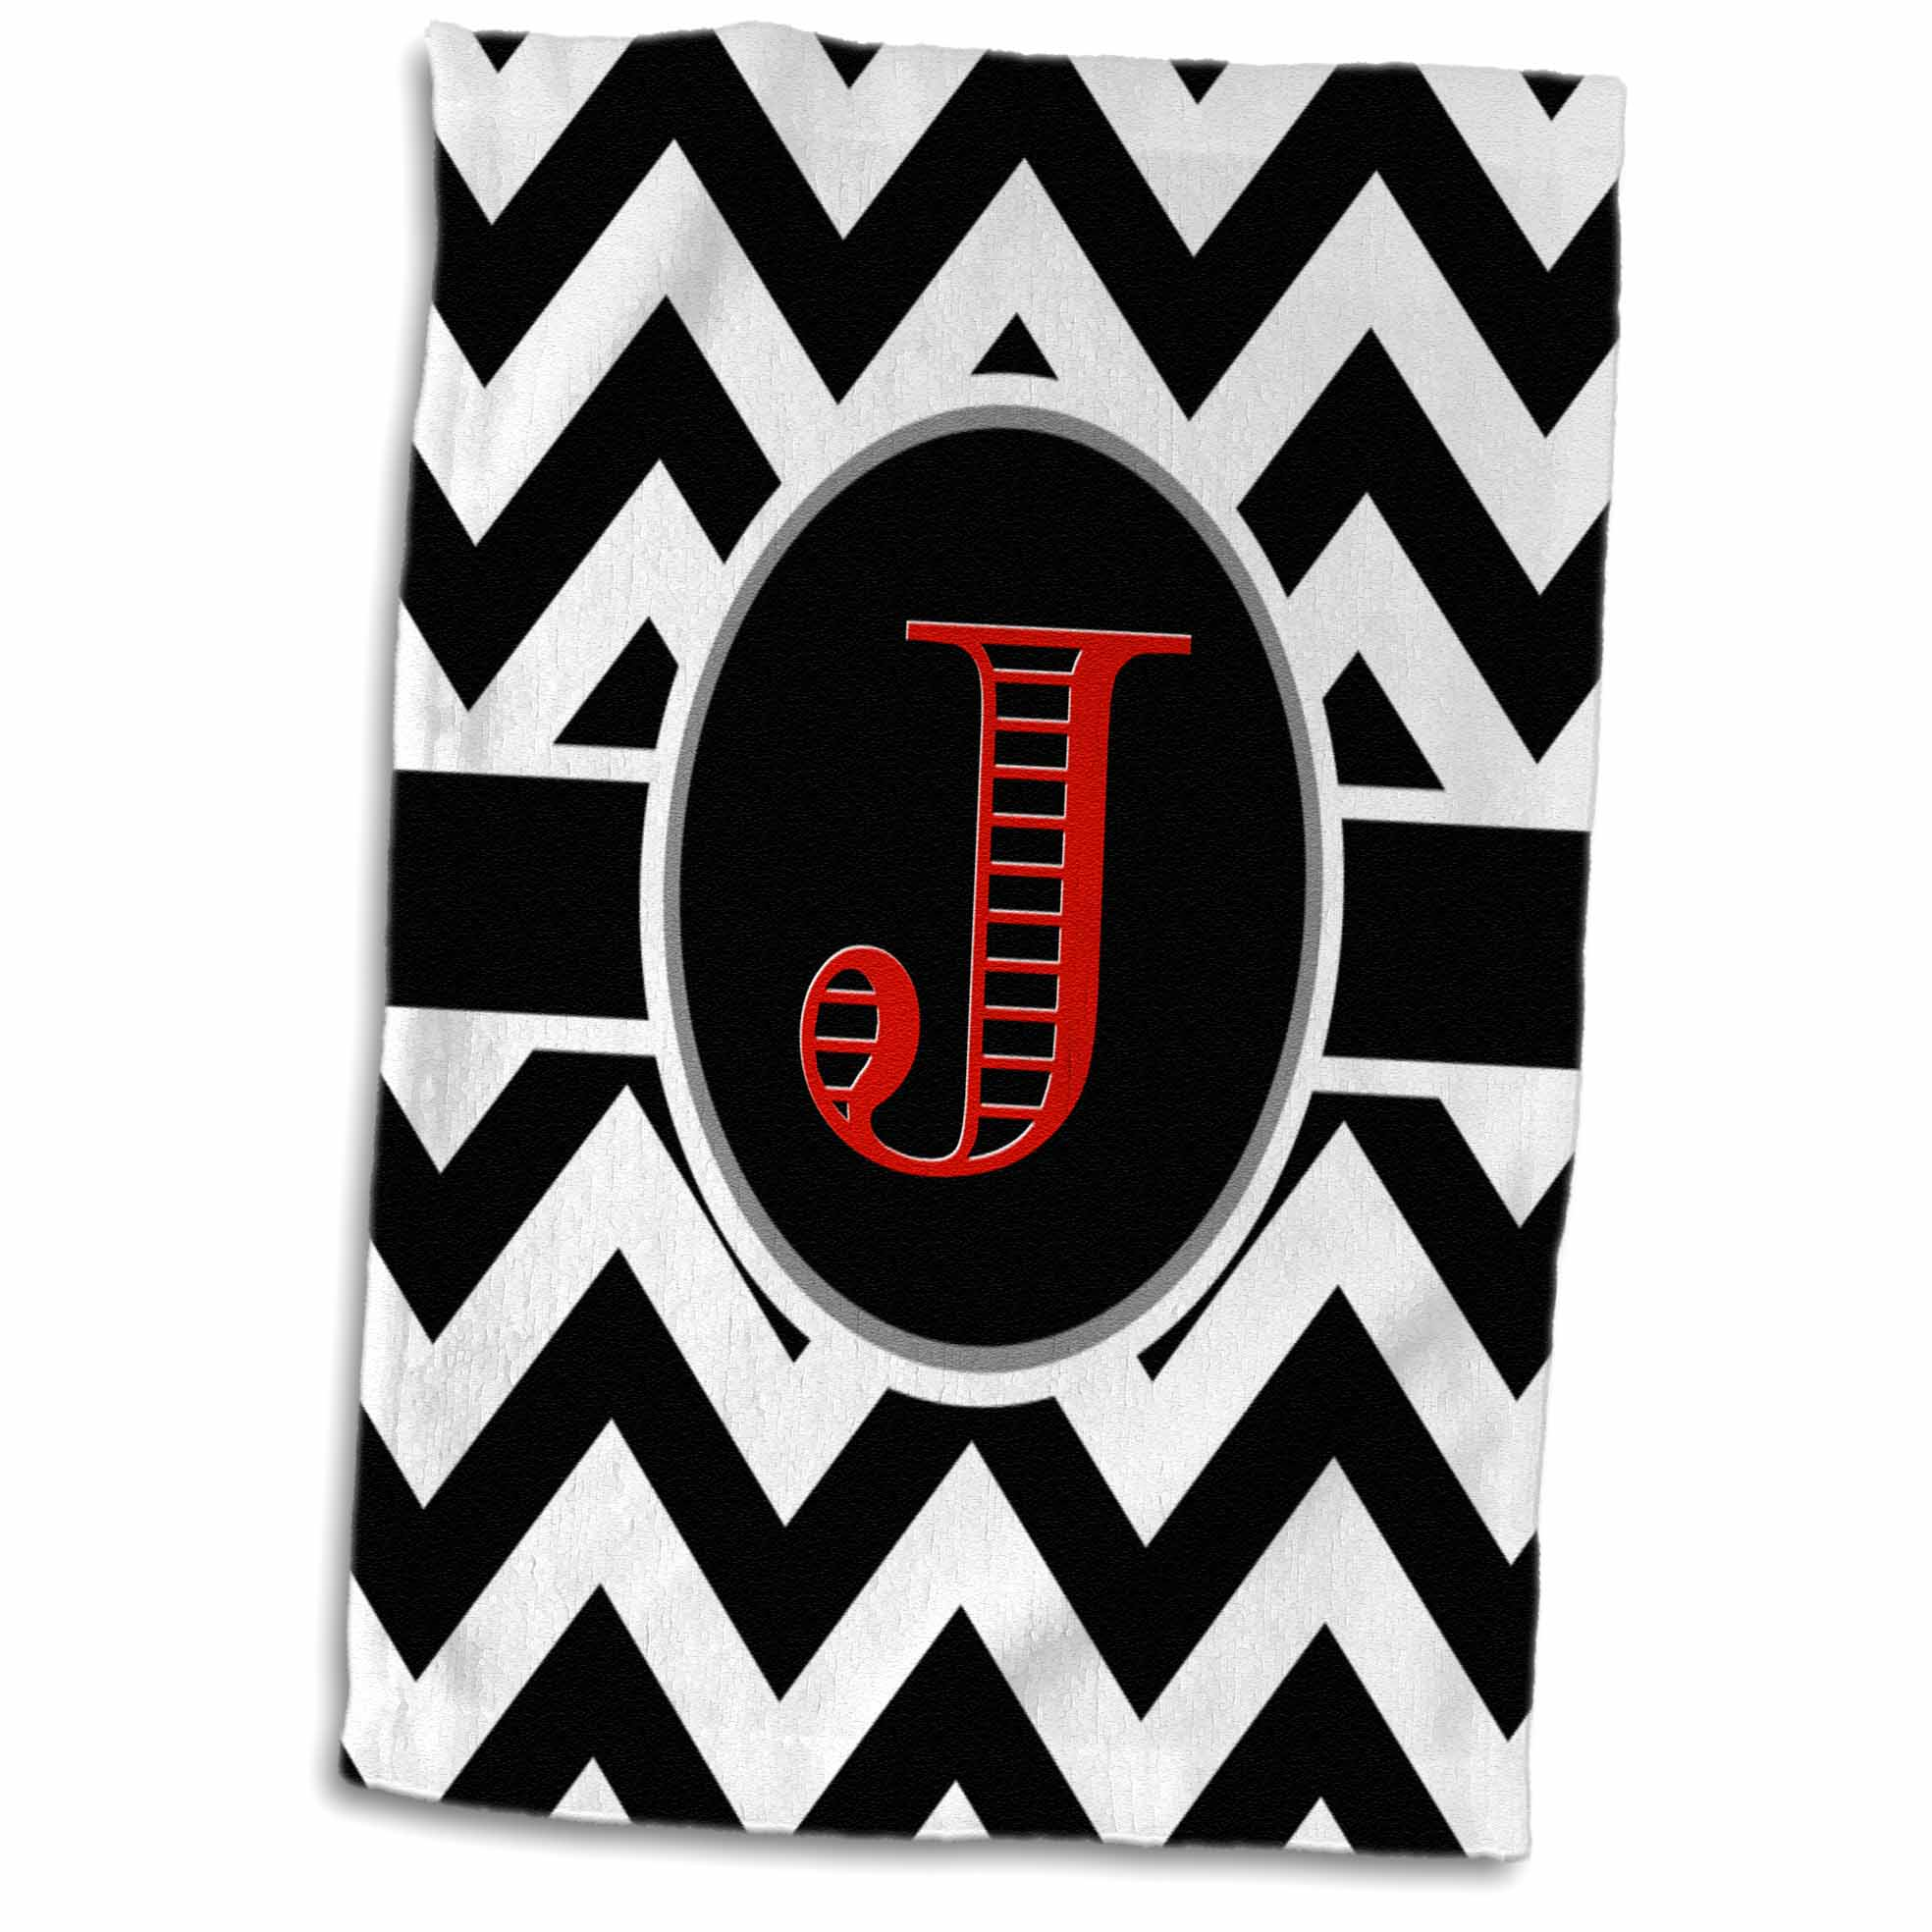 3dRose Black and white chevron monogram red initial J - Towel, 15 by 22-inch